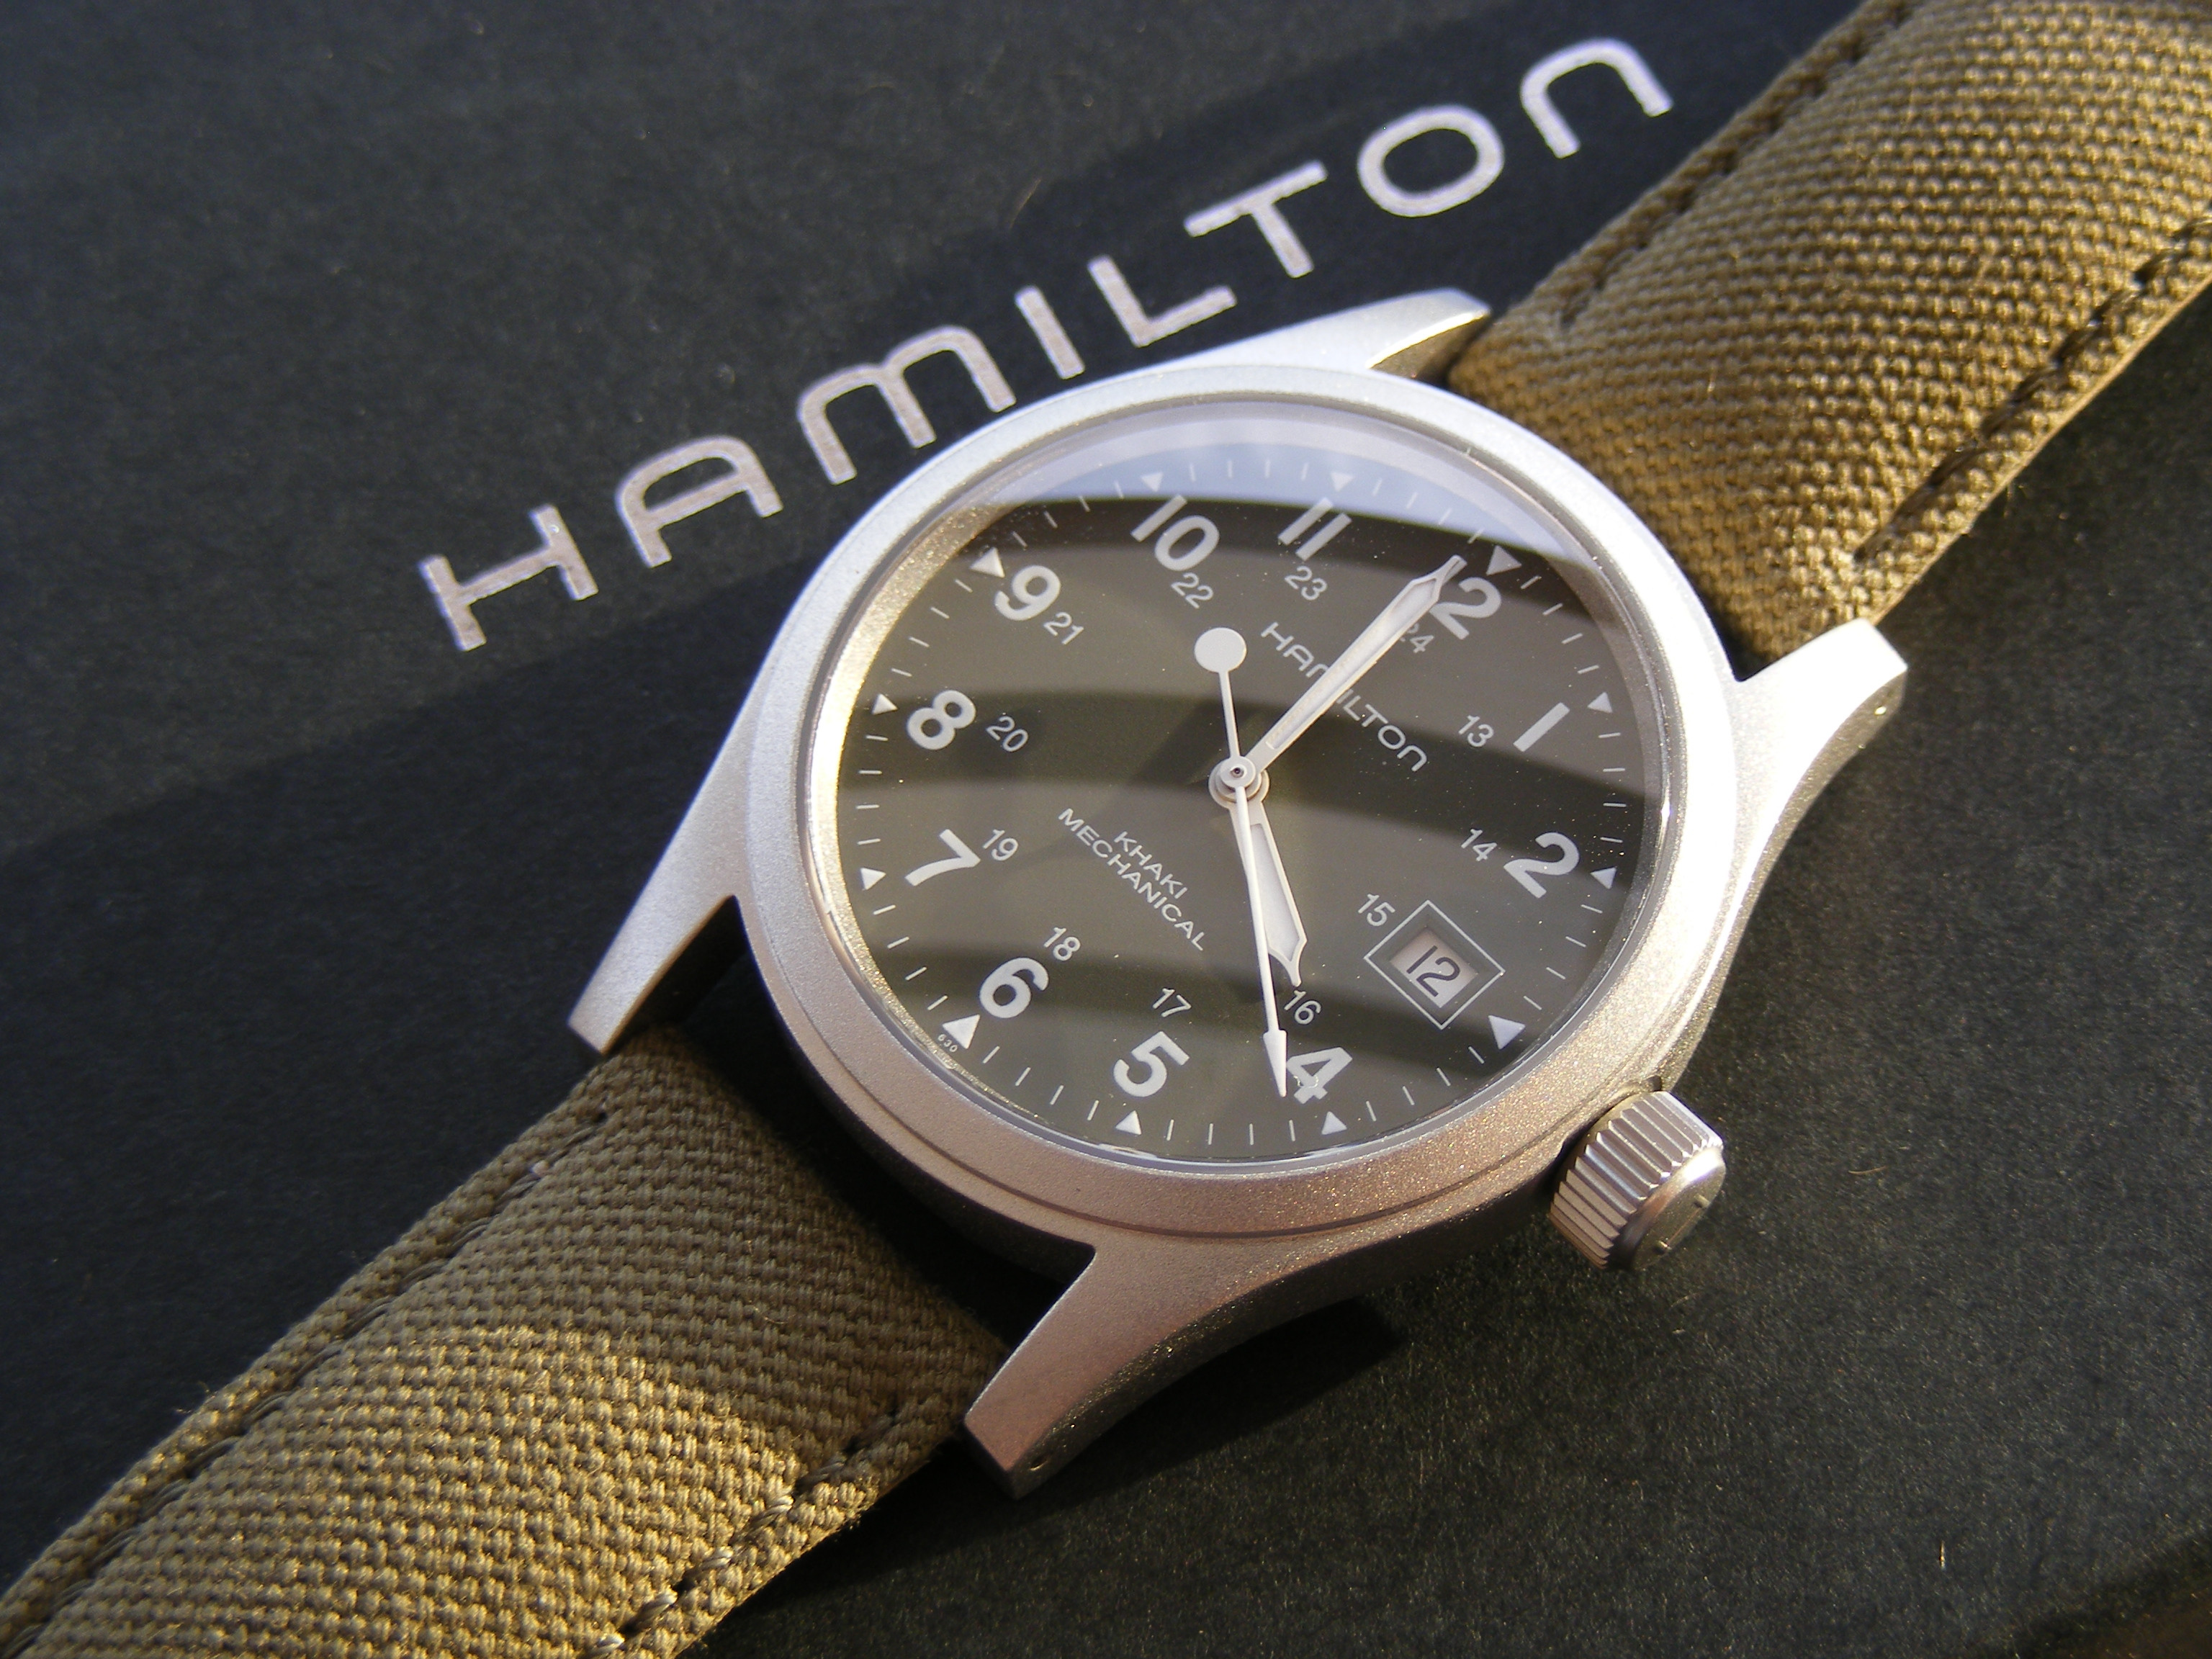 Hamilton HML-H69419363 Hand Wind Watch Review